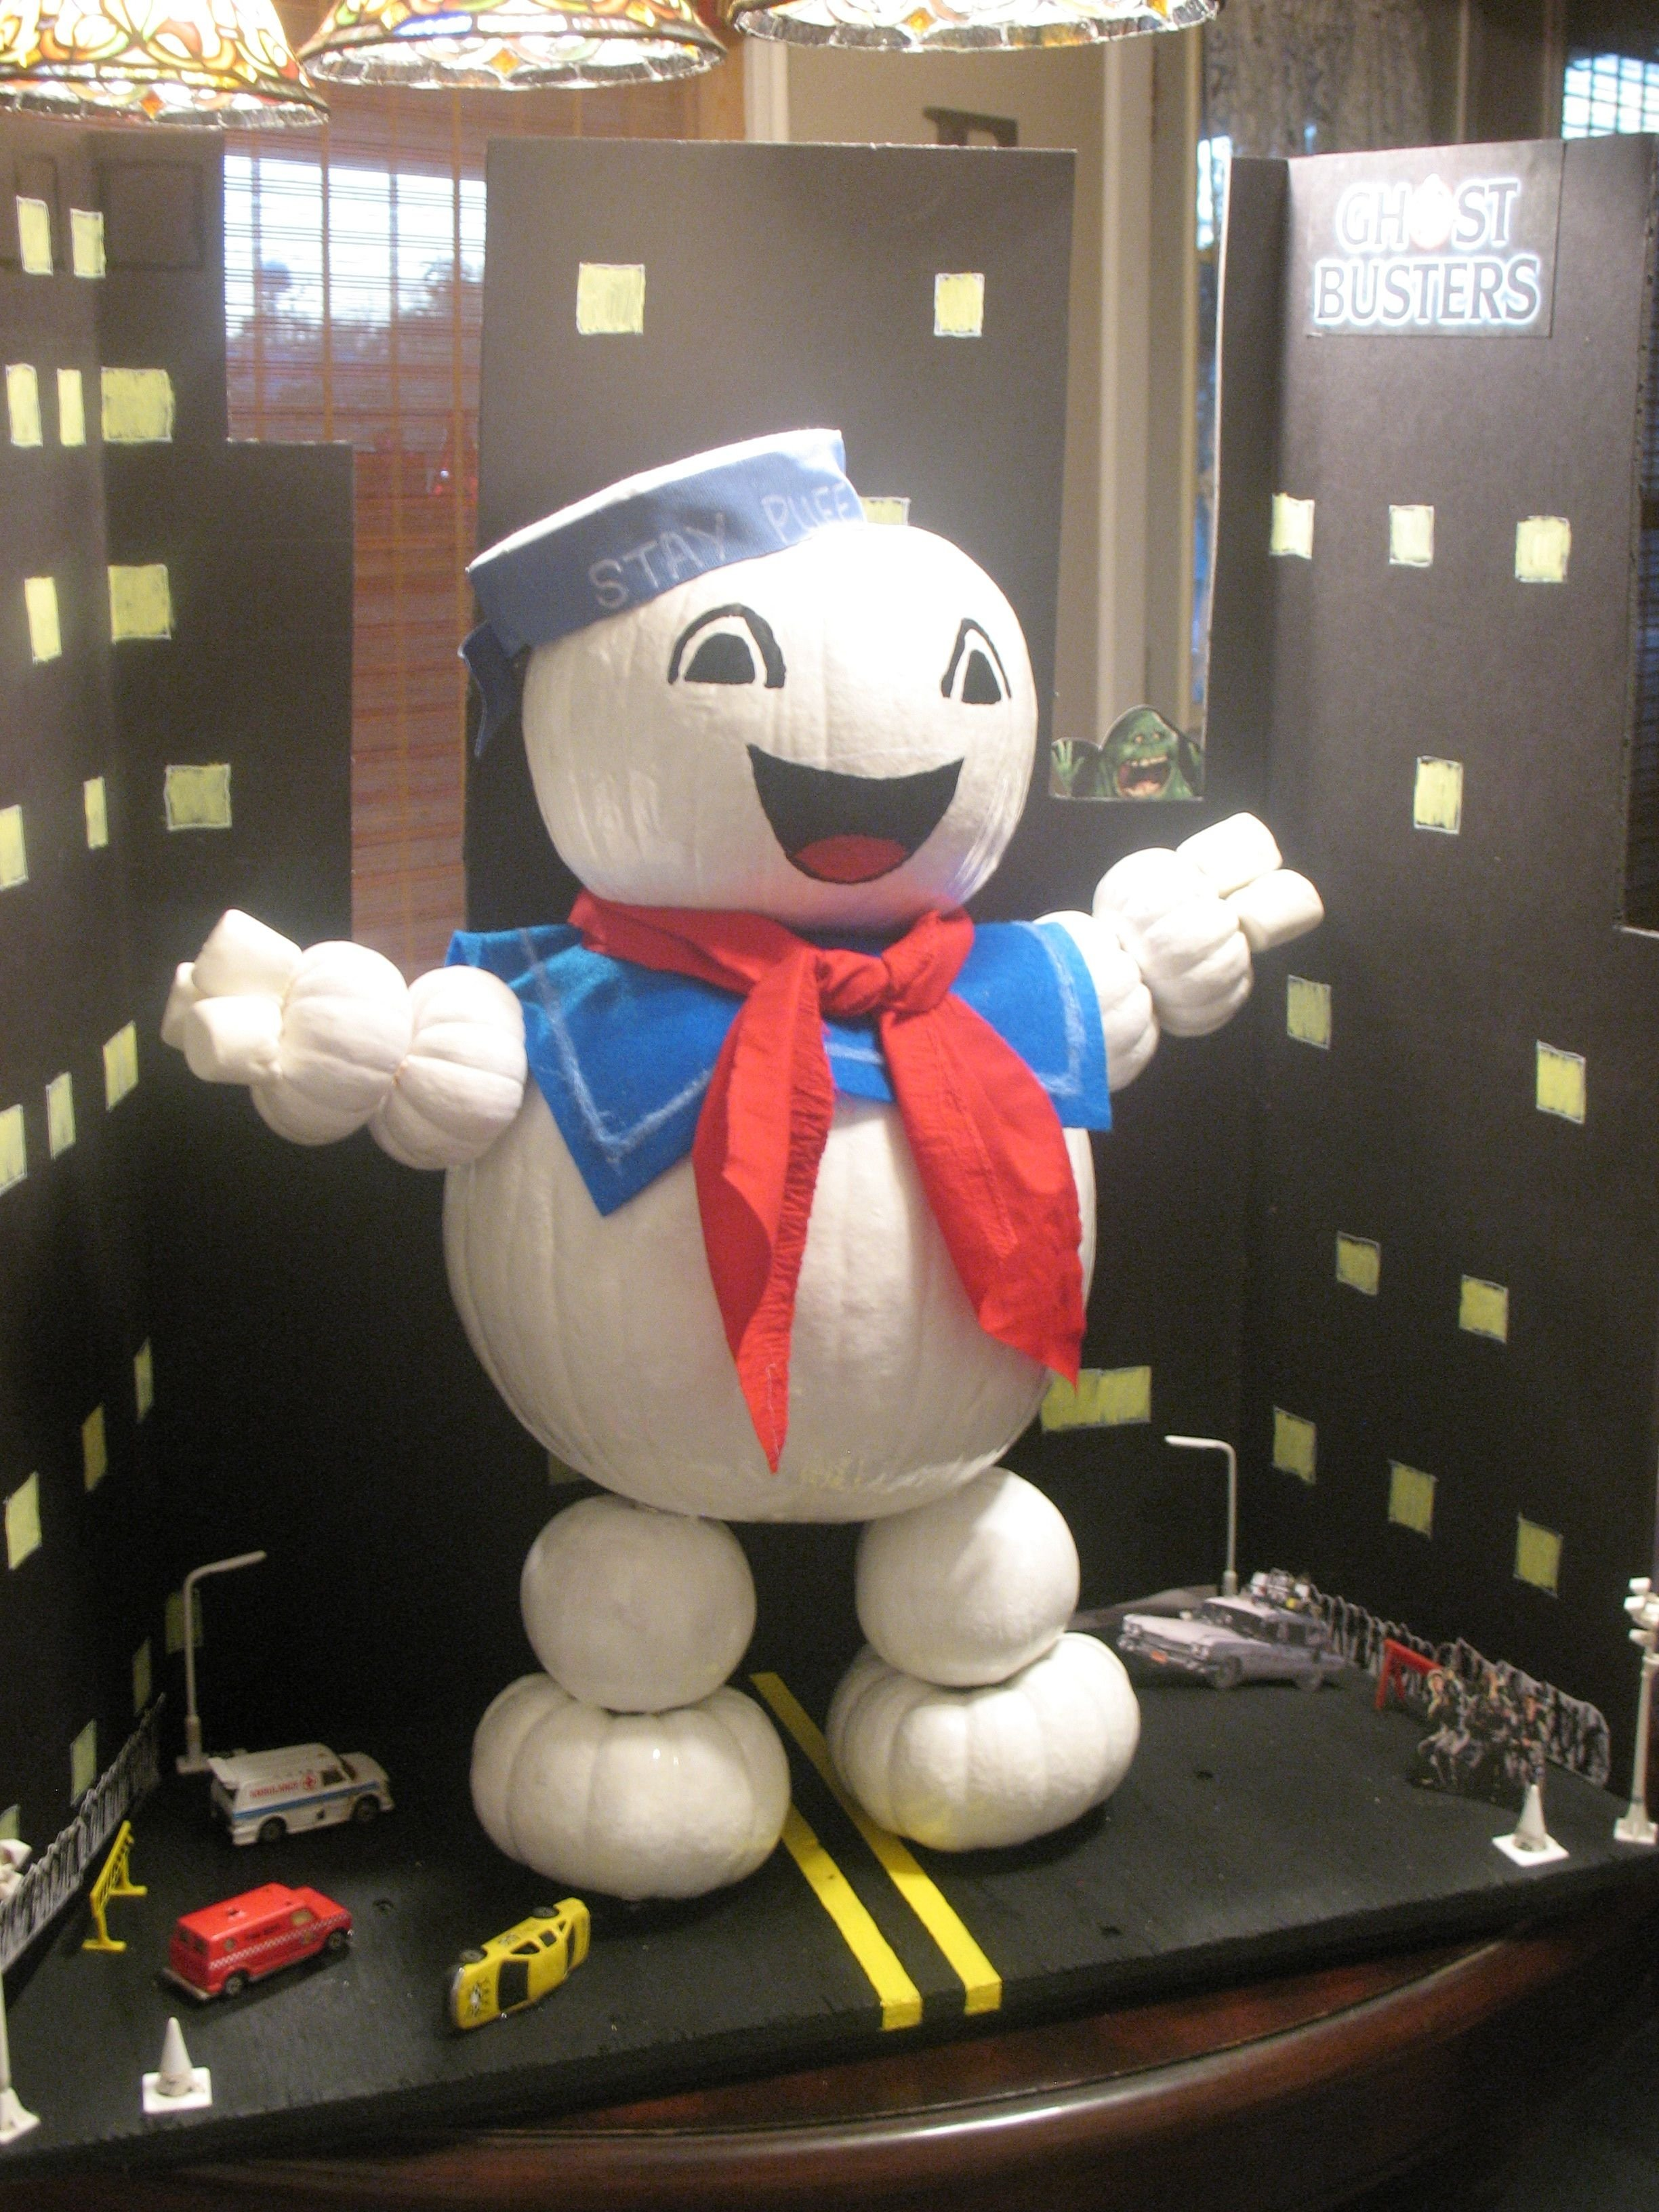 10 Fashionable Creative Pumpkin Ideas No Carving stay puff marshmallow man made from pumpkins son made this for his 2020